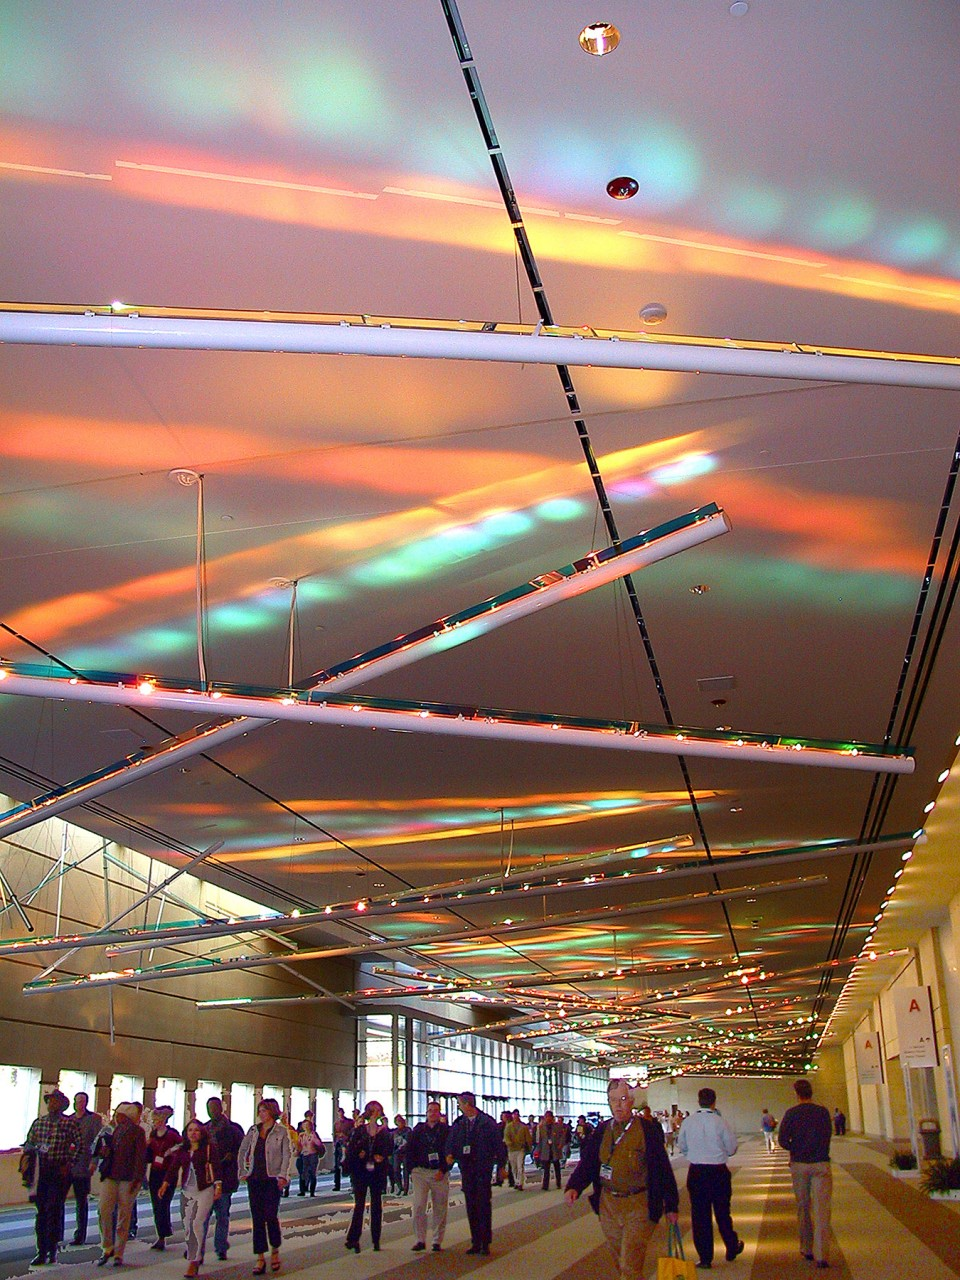 Lightstream, Dallas, Texas / image 3